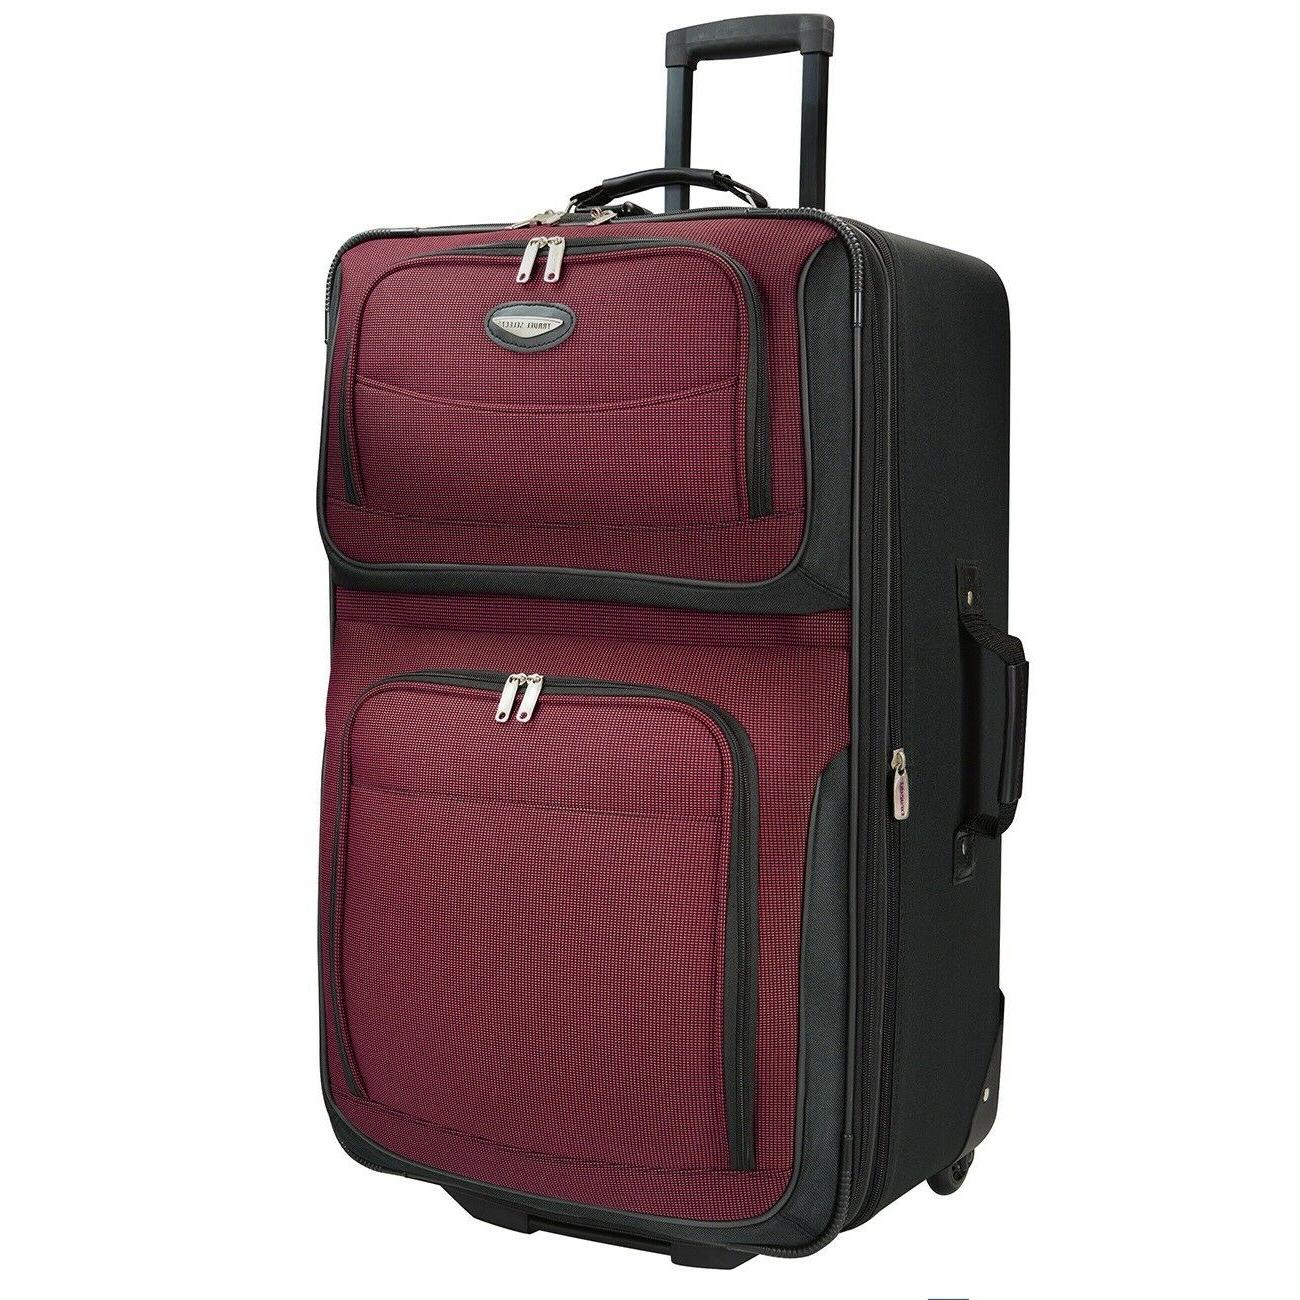 Carry-on Expandable Rolling Luggage Suitcase Bag